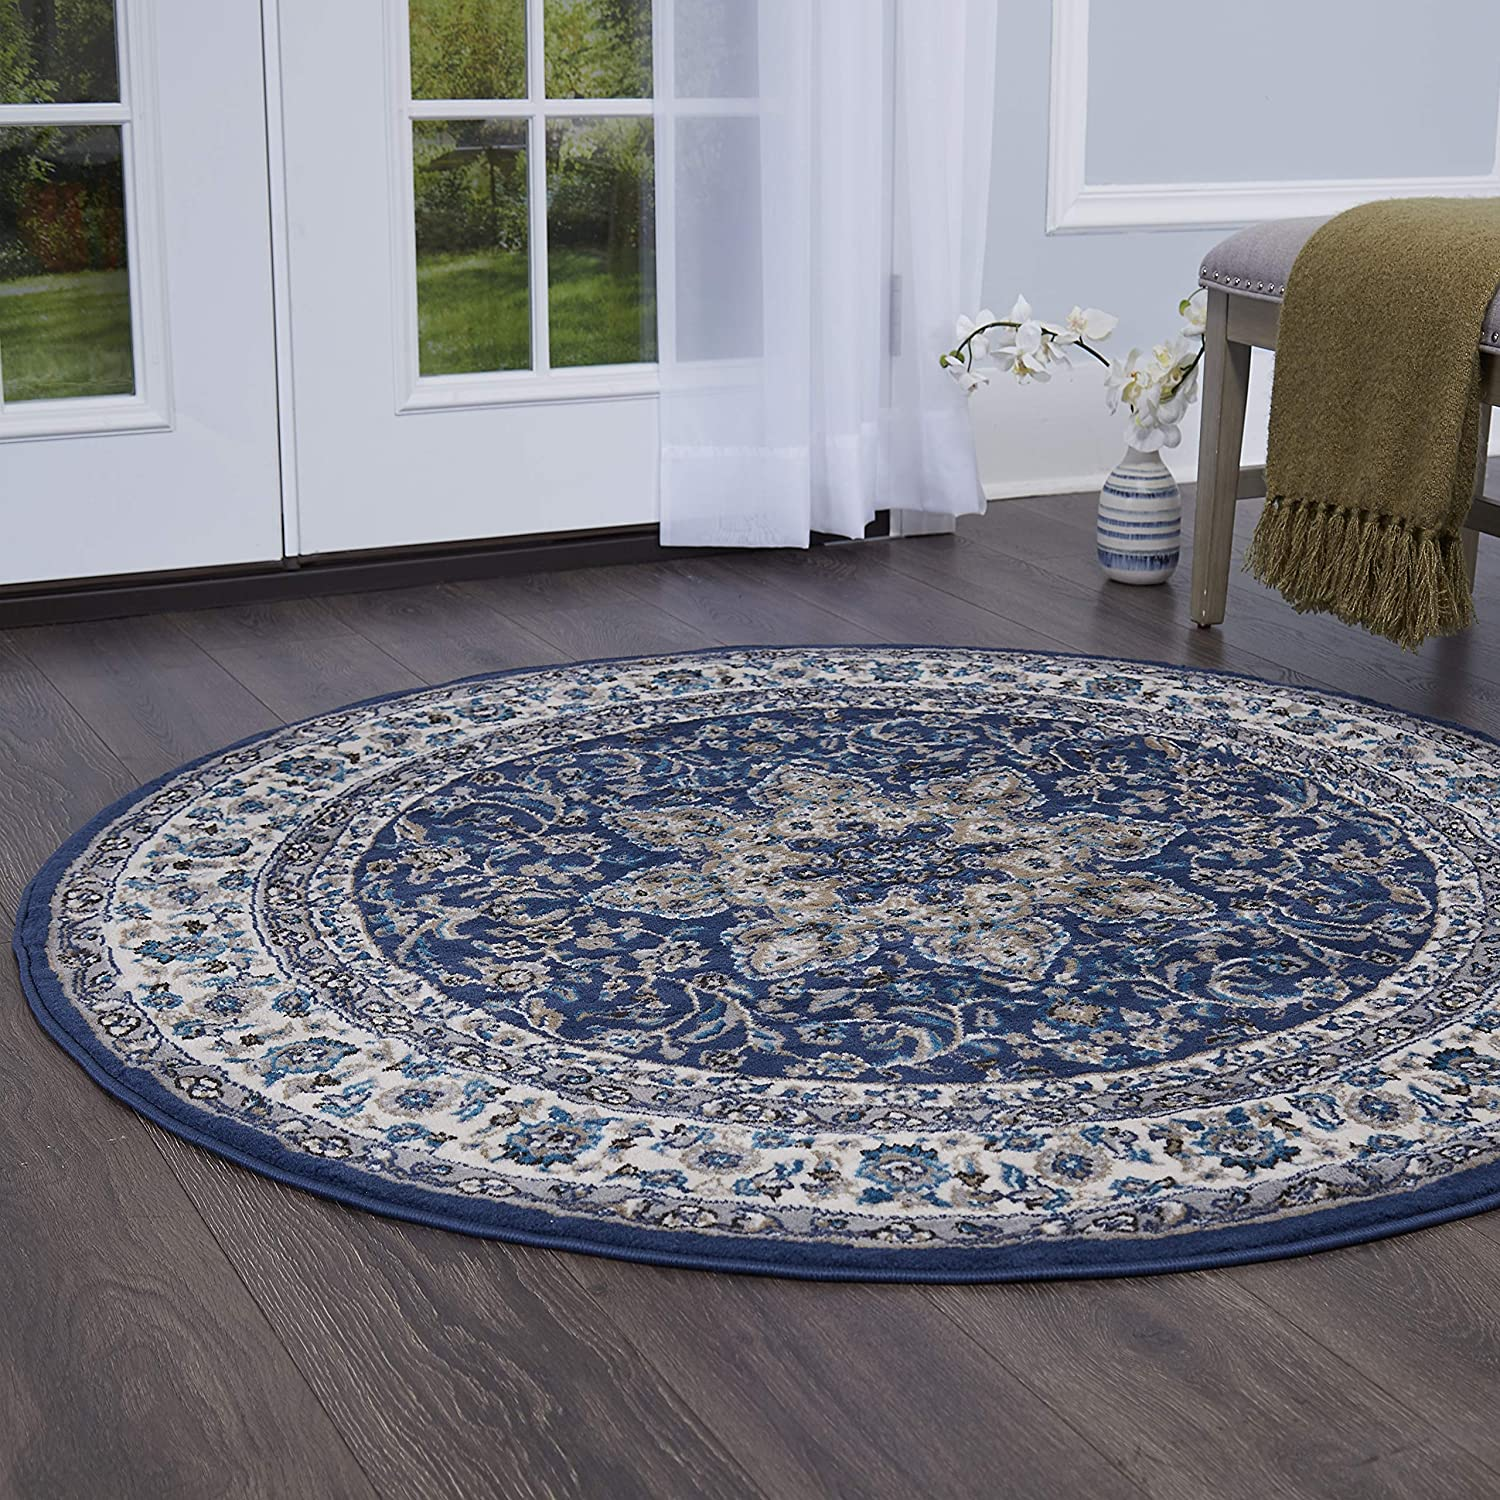 "Home Dynamix Tremont Magnolia Rug, 39"" Round, Navy/Ivory"